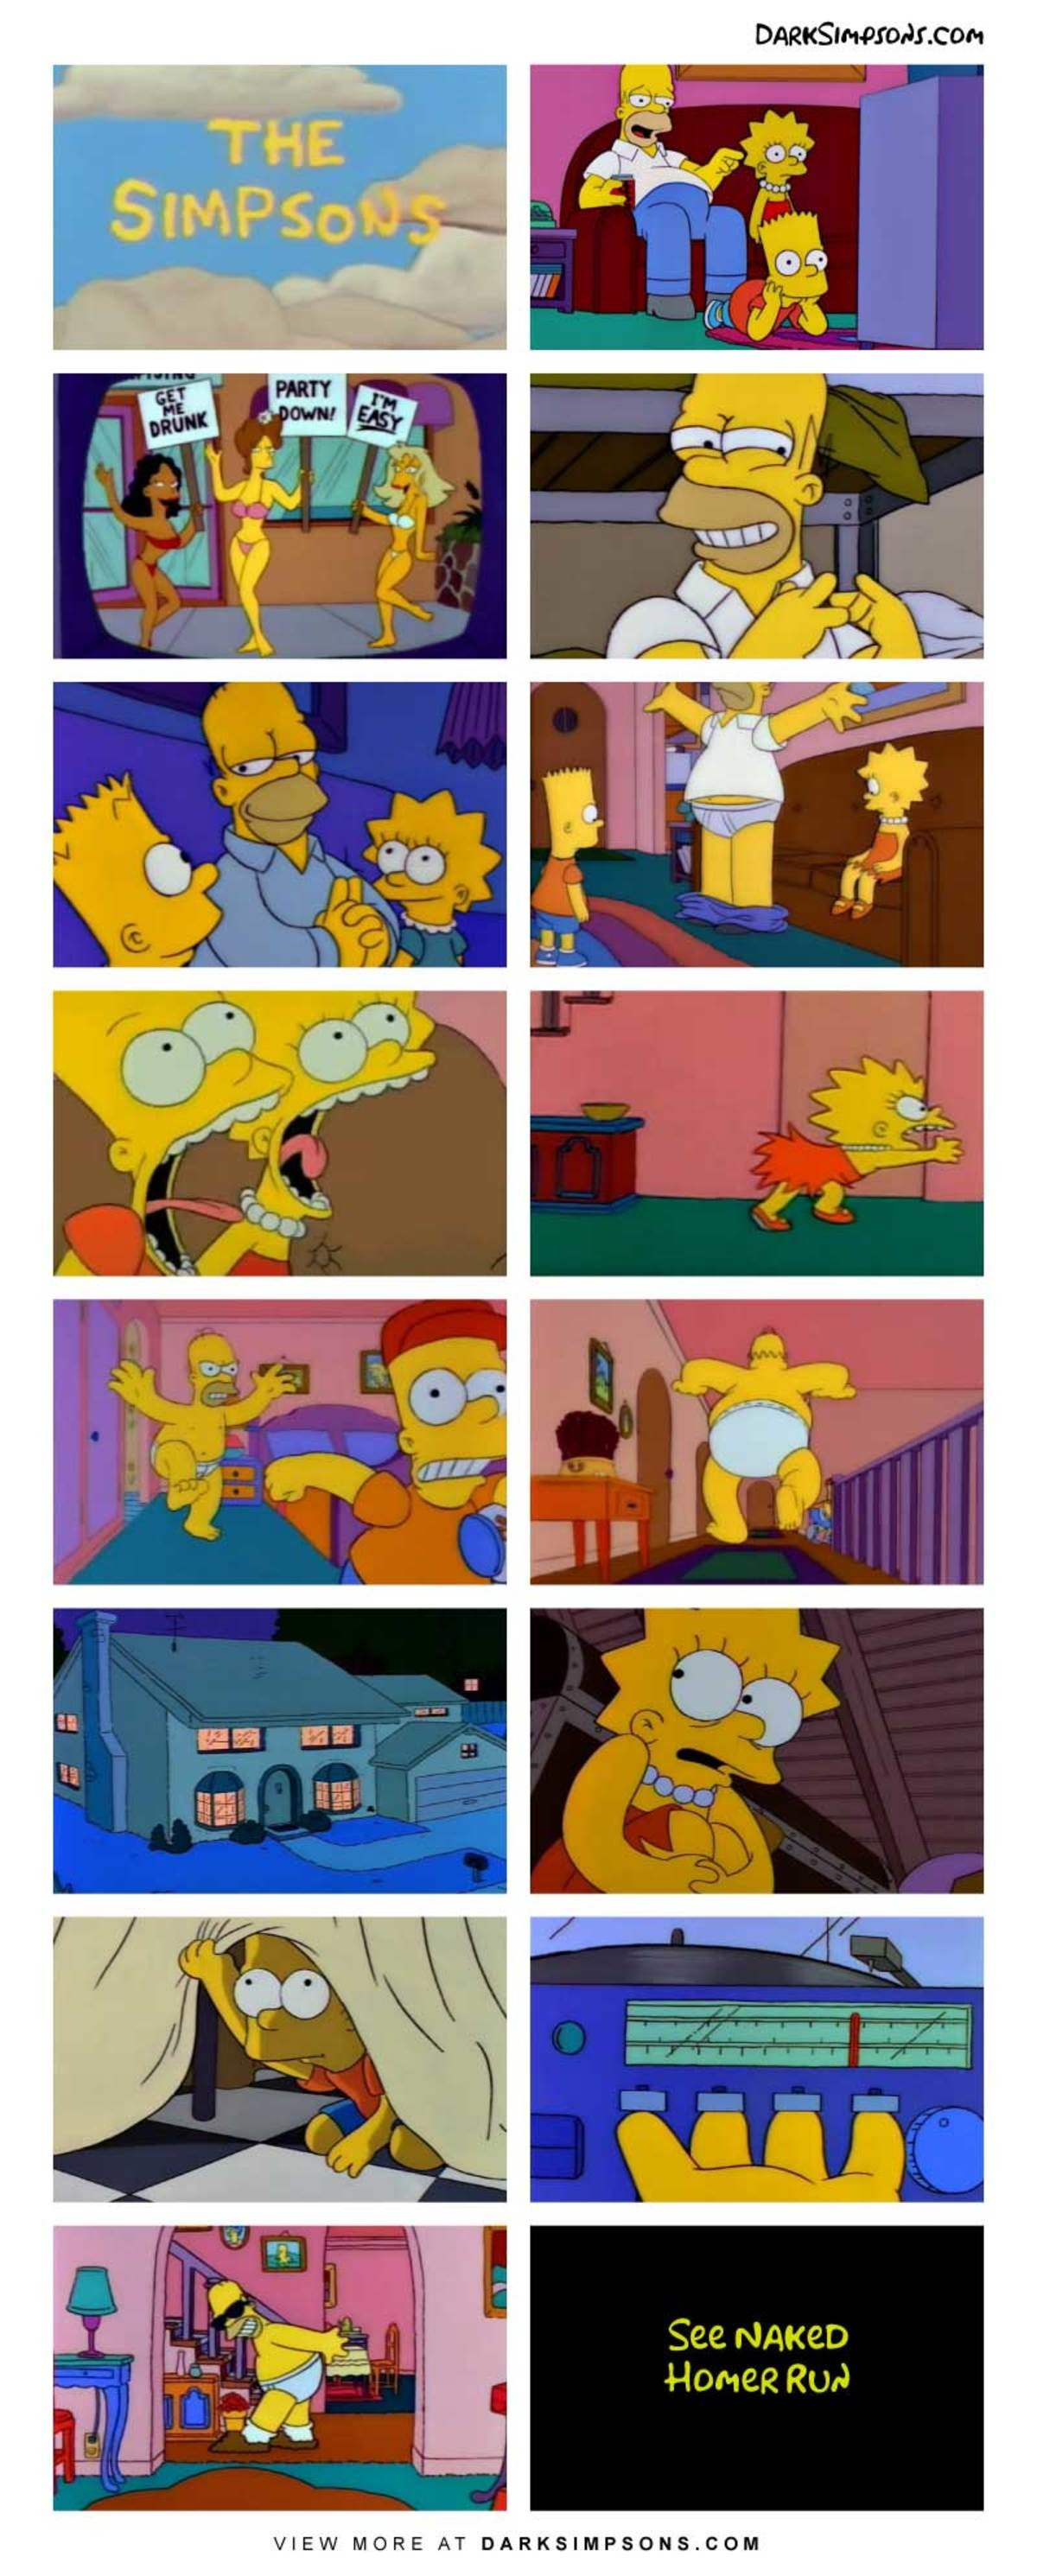 Bart: Kiss you? But Dad, I'm your kid!. . See N/ men Home Ruy. Read that as se naked homerun.